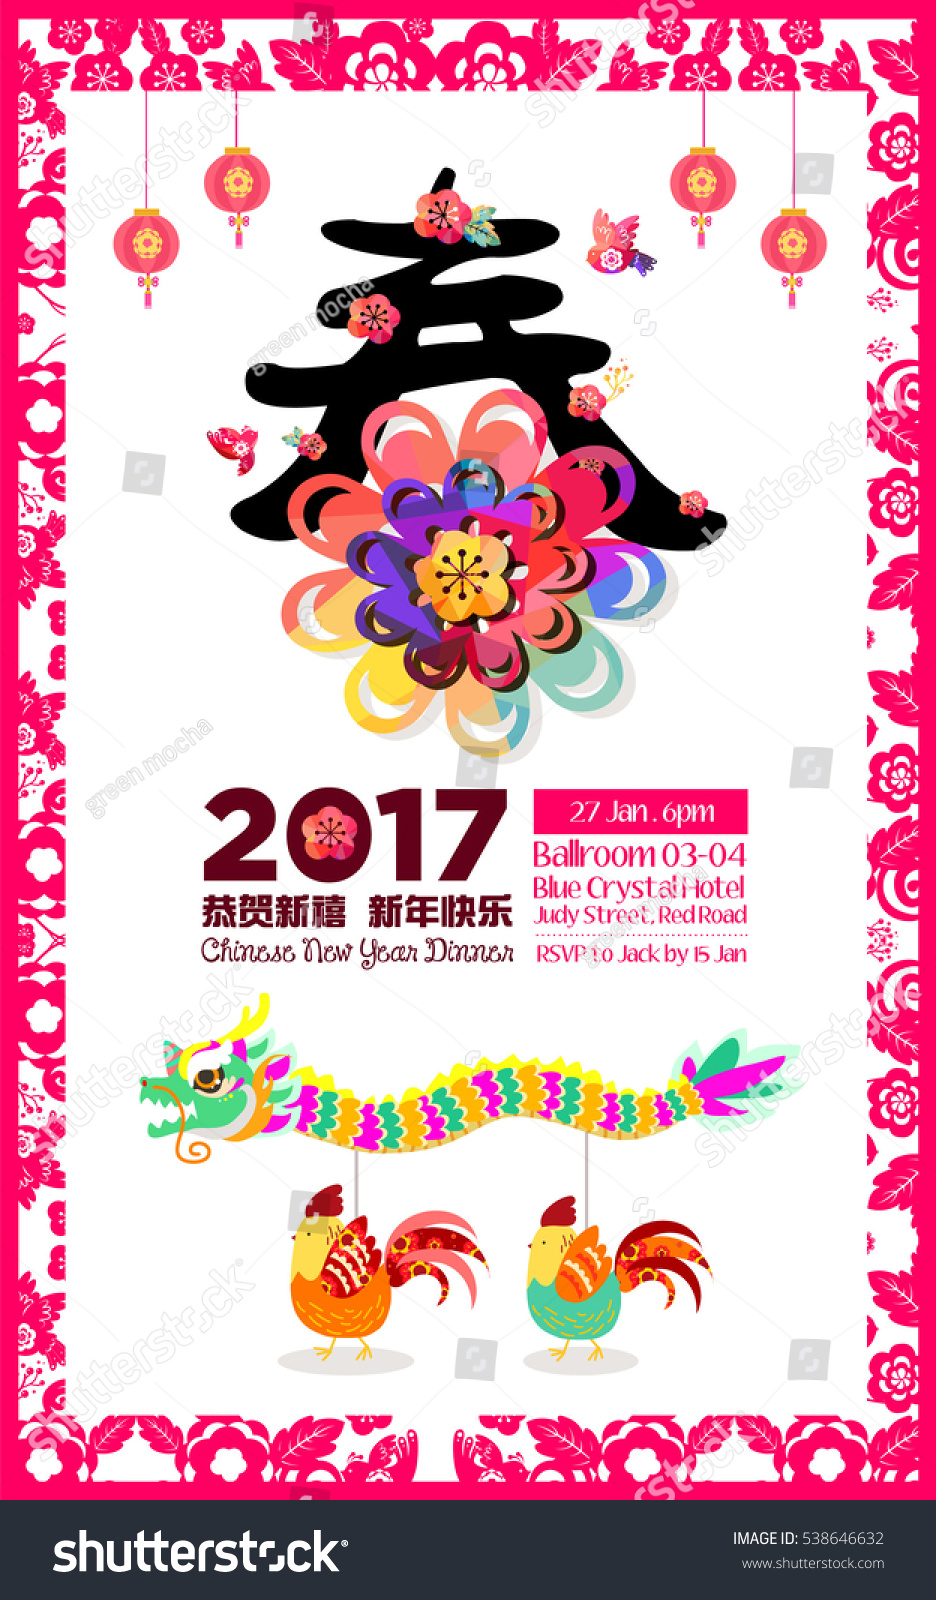 happy chinese new year dinner invitation card with cute roosters playing dragon dance big translation